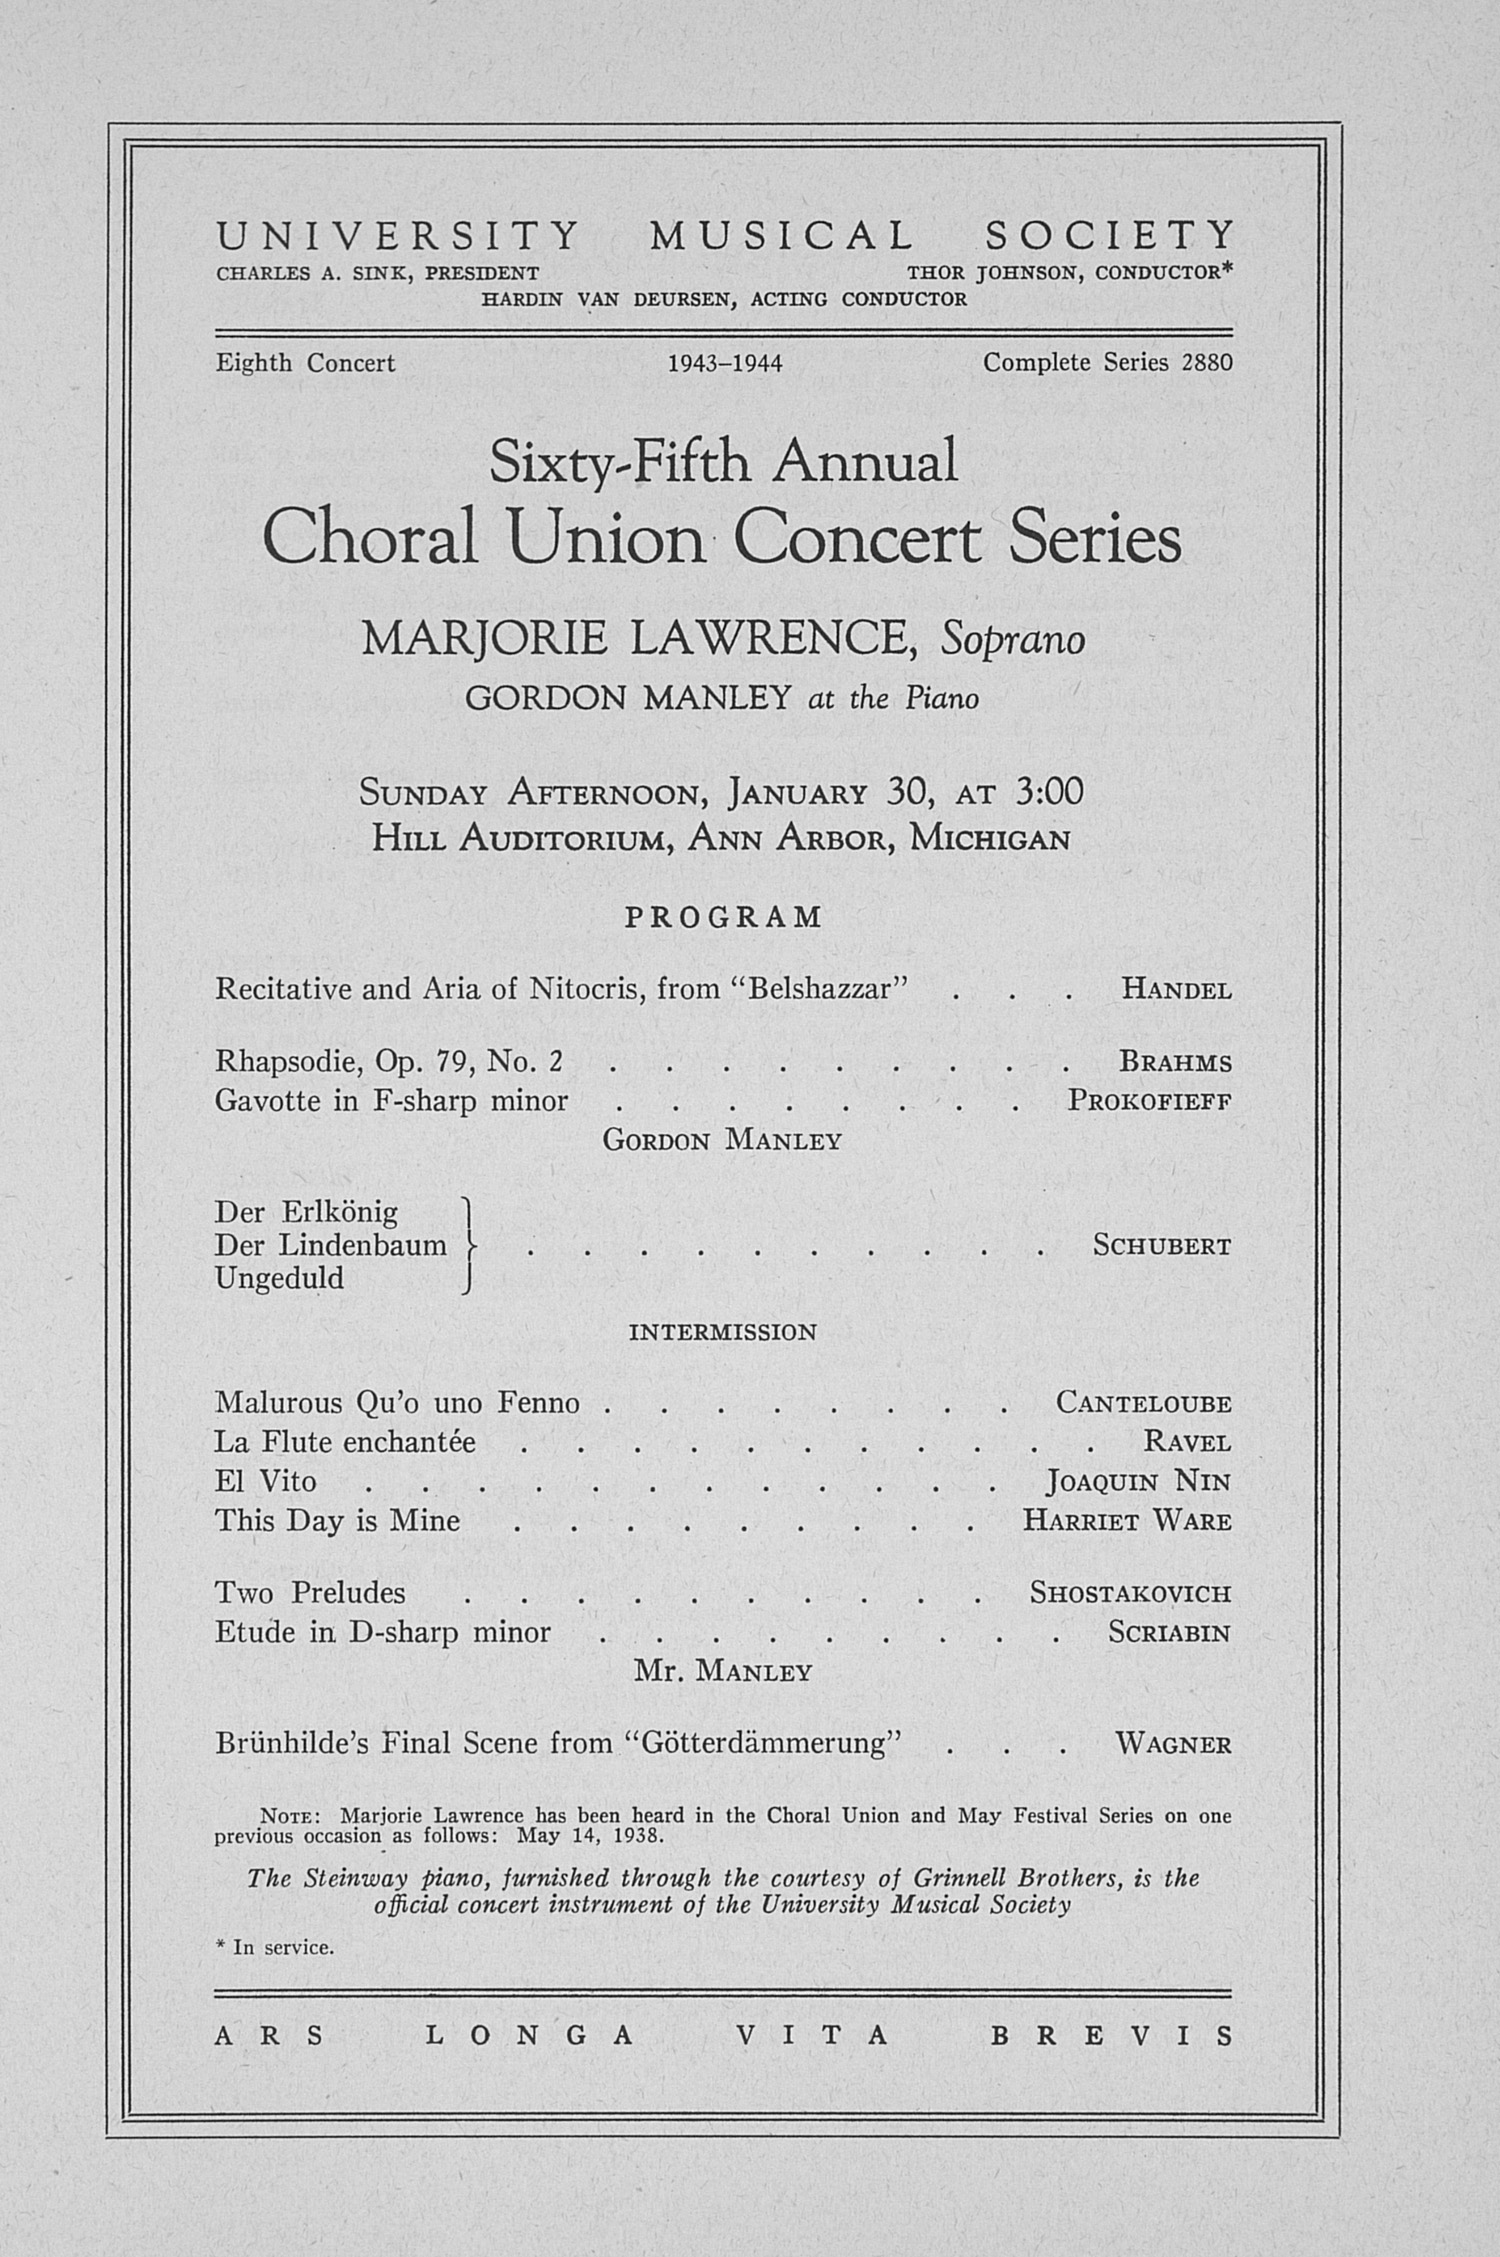 UMS Concert Program, January 30: Sixty-fifth Annual Choral Union Concert Series -- Marjorie Lawrence image